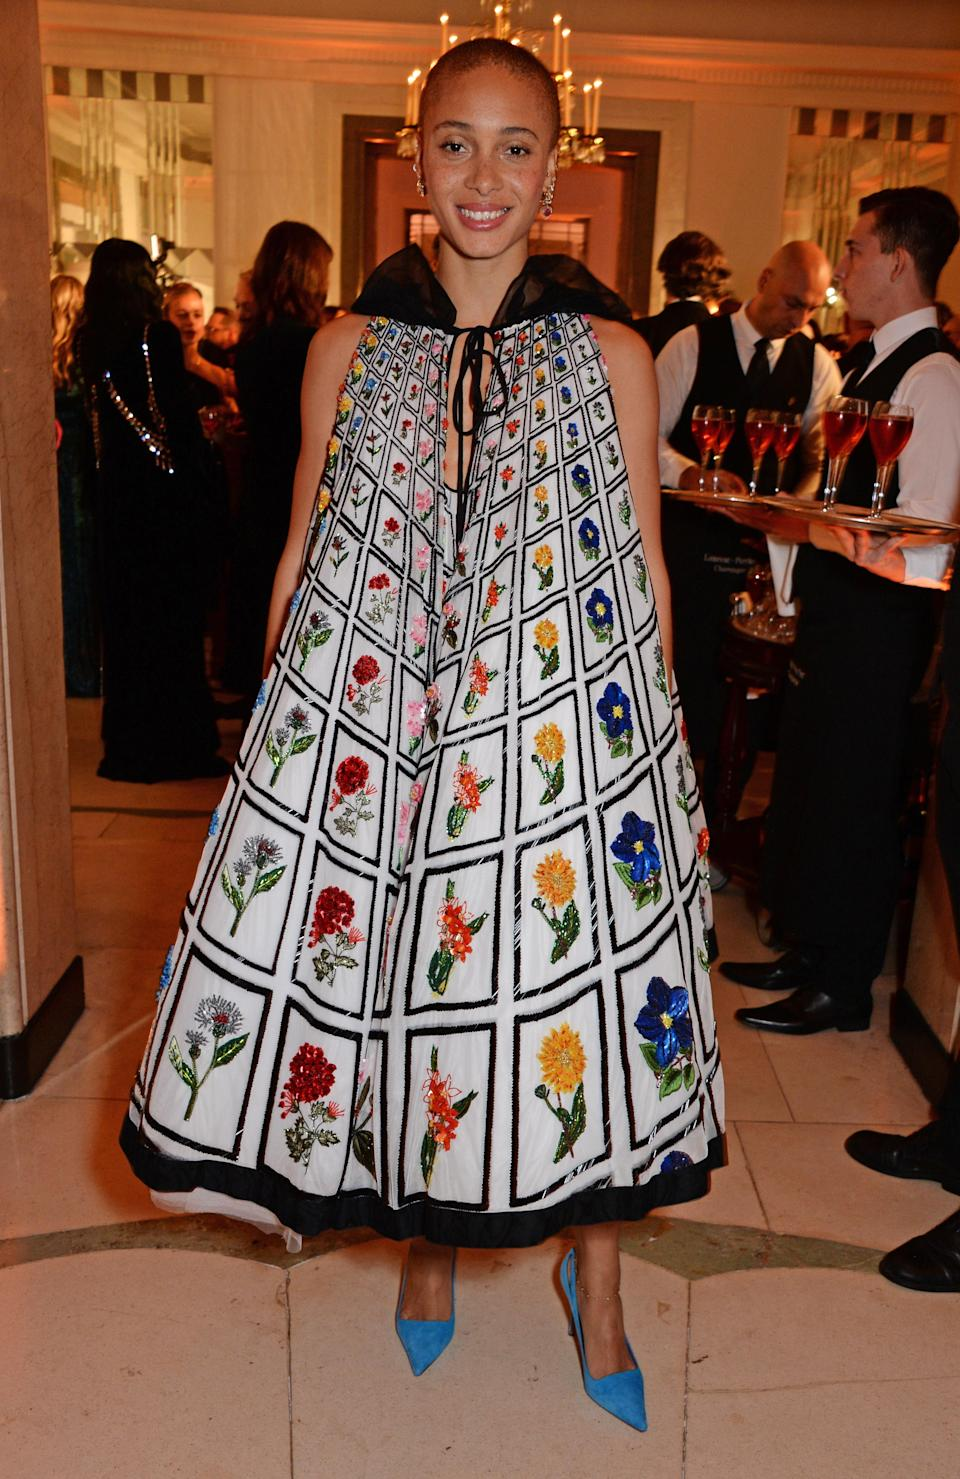 <p>The fashion model wore a one-of-a-kind <span>Mary Katrantzou gown paired with bright blue heels for the Claridge's event. </span><em>[Photo: Getty]</em> </p>